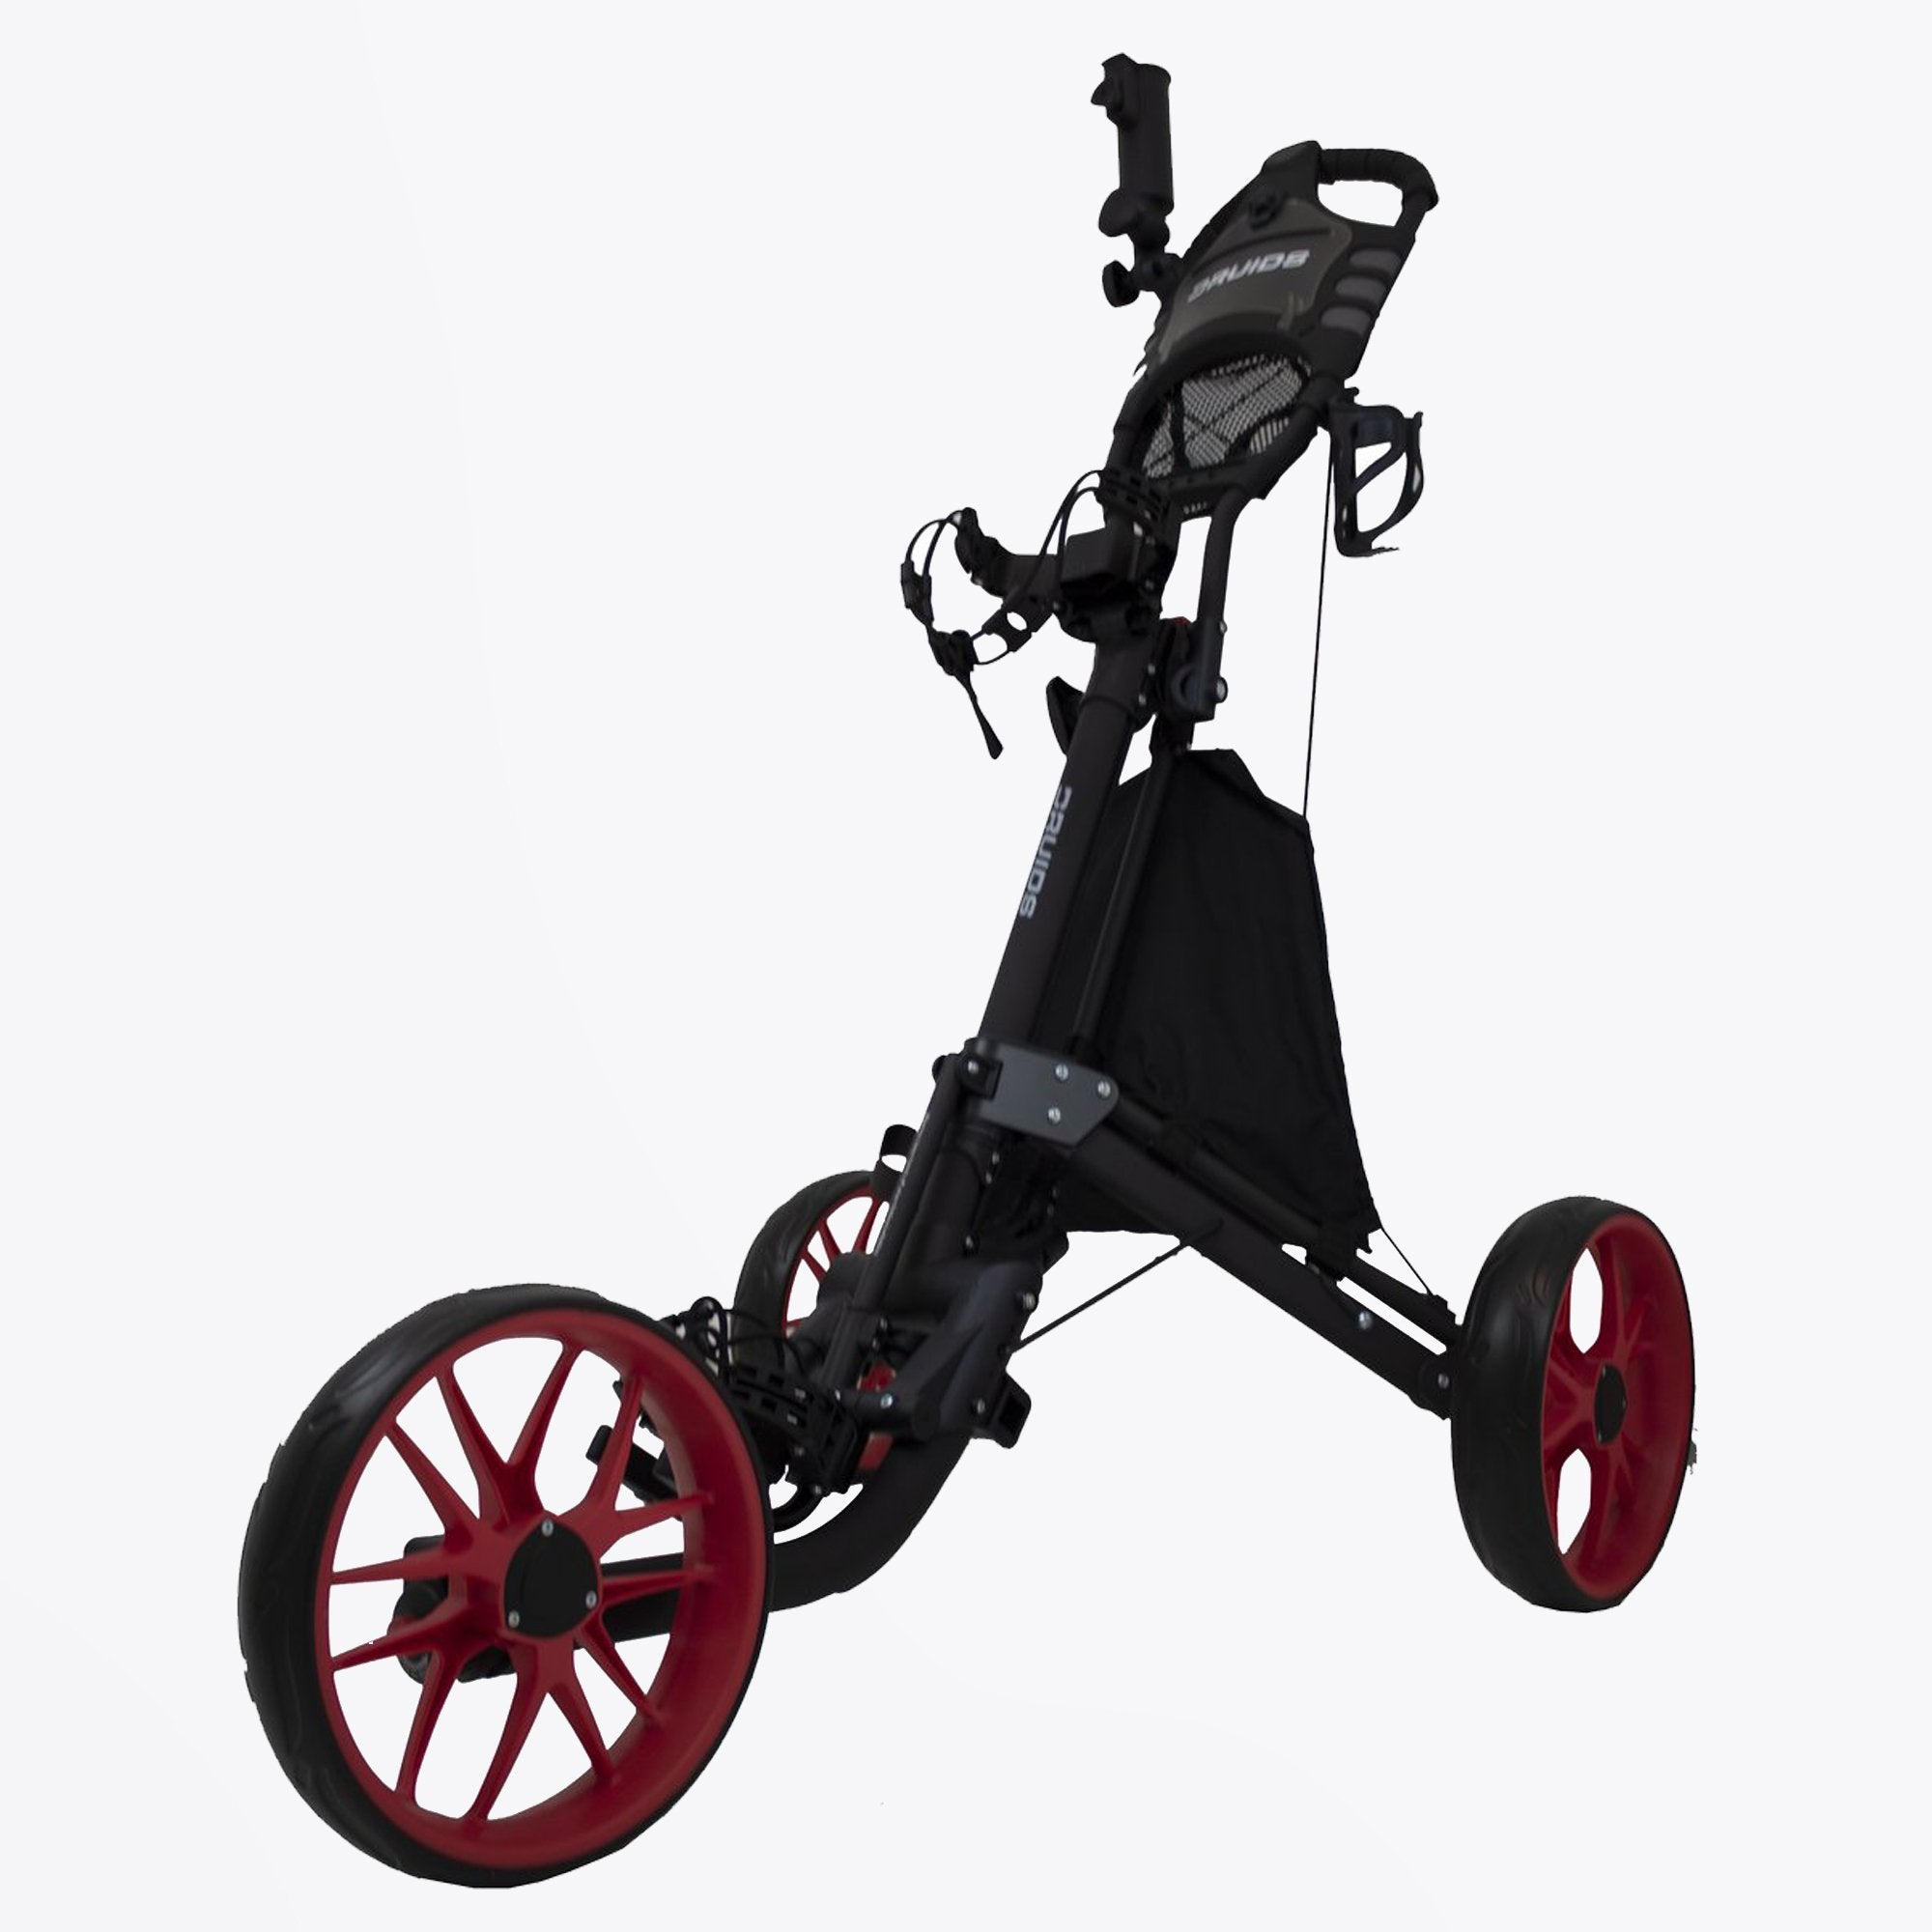 Druids Golf - Compact EZ Carbon Trolley (Black/Red)